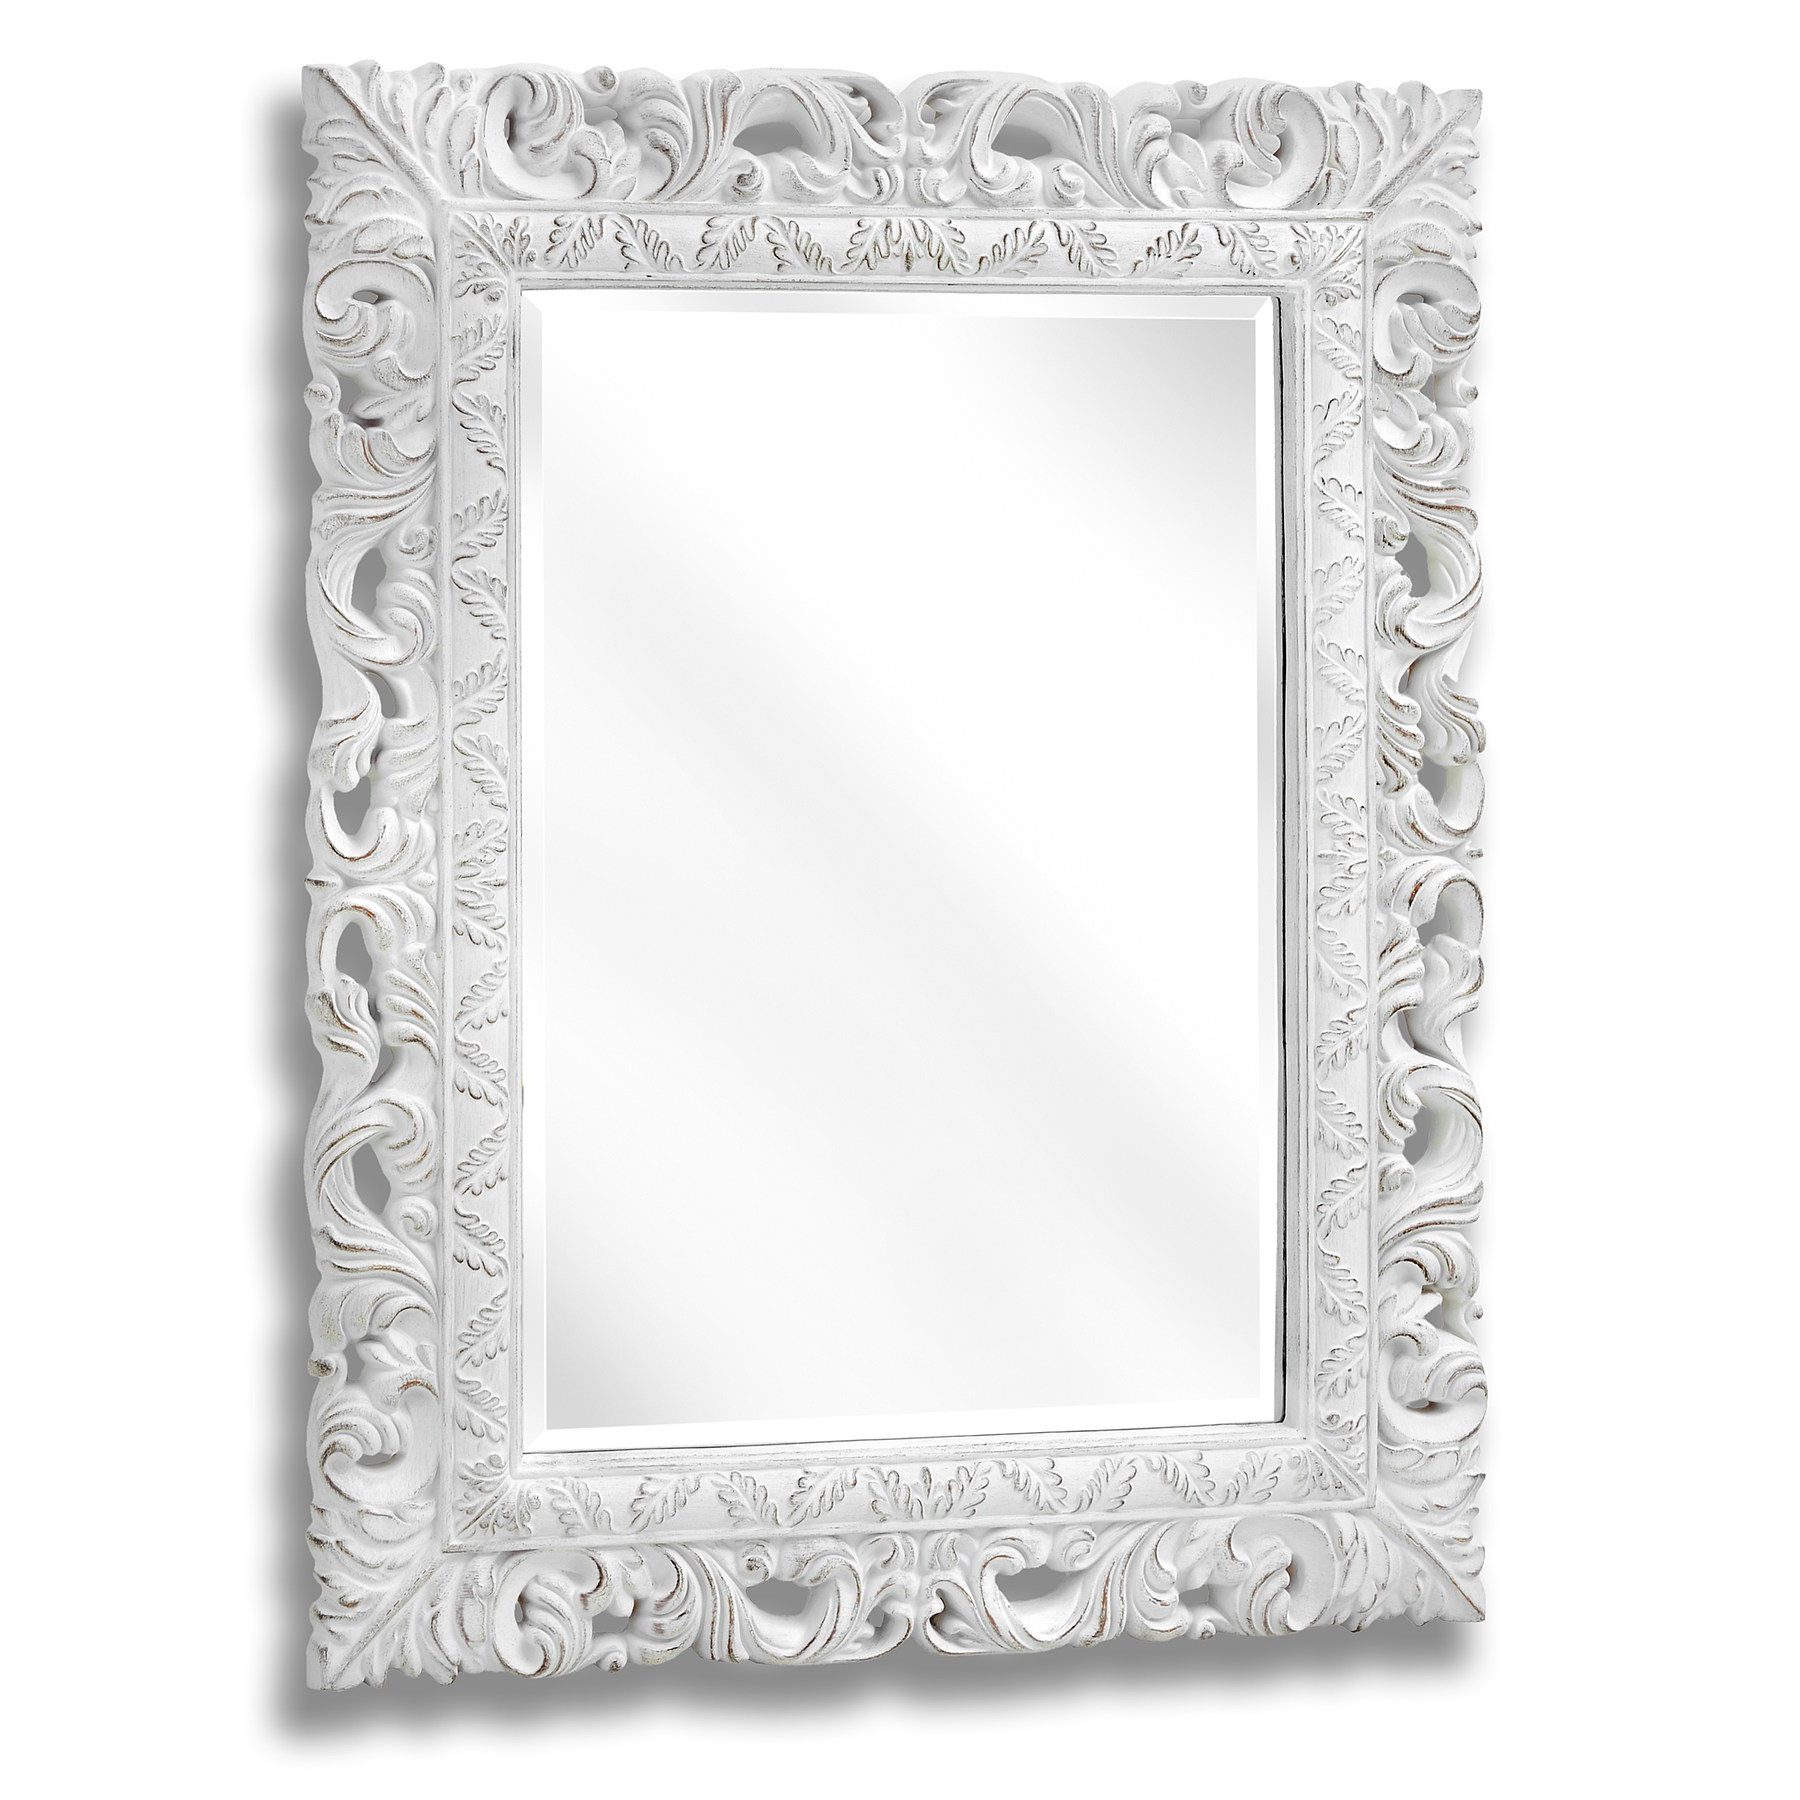 Current Antique Wall Mirrors With Regard To Antique White Ornate Leaf Wall Mirror (Gallery 18 of 20)